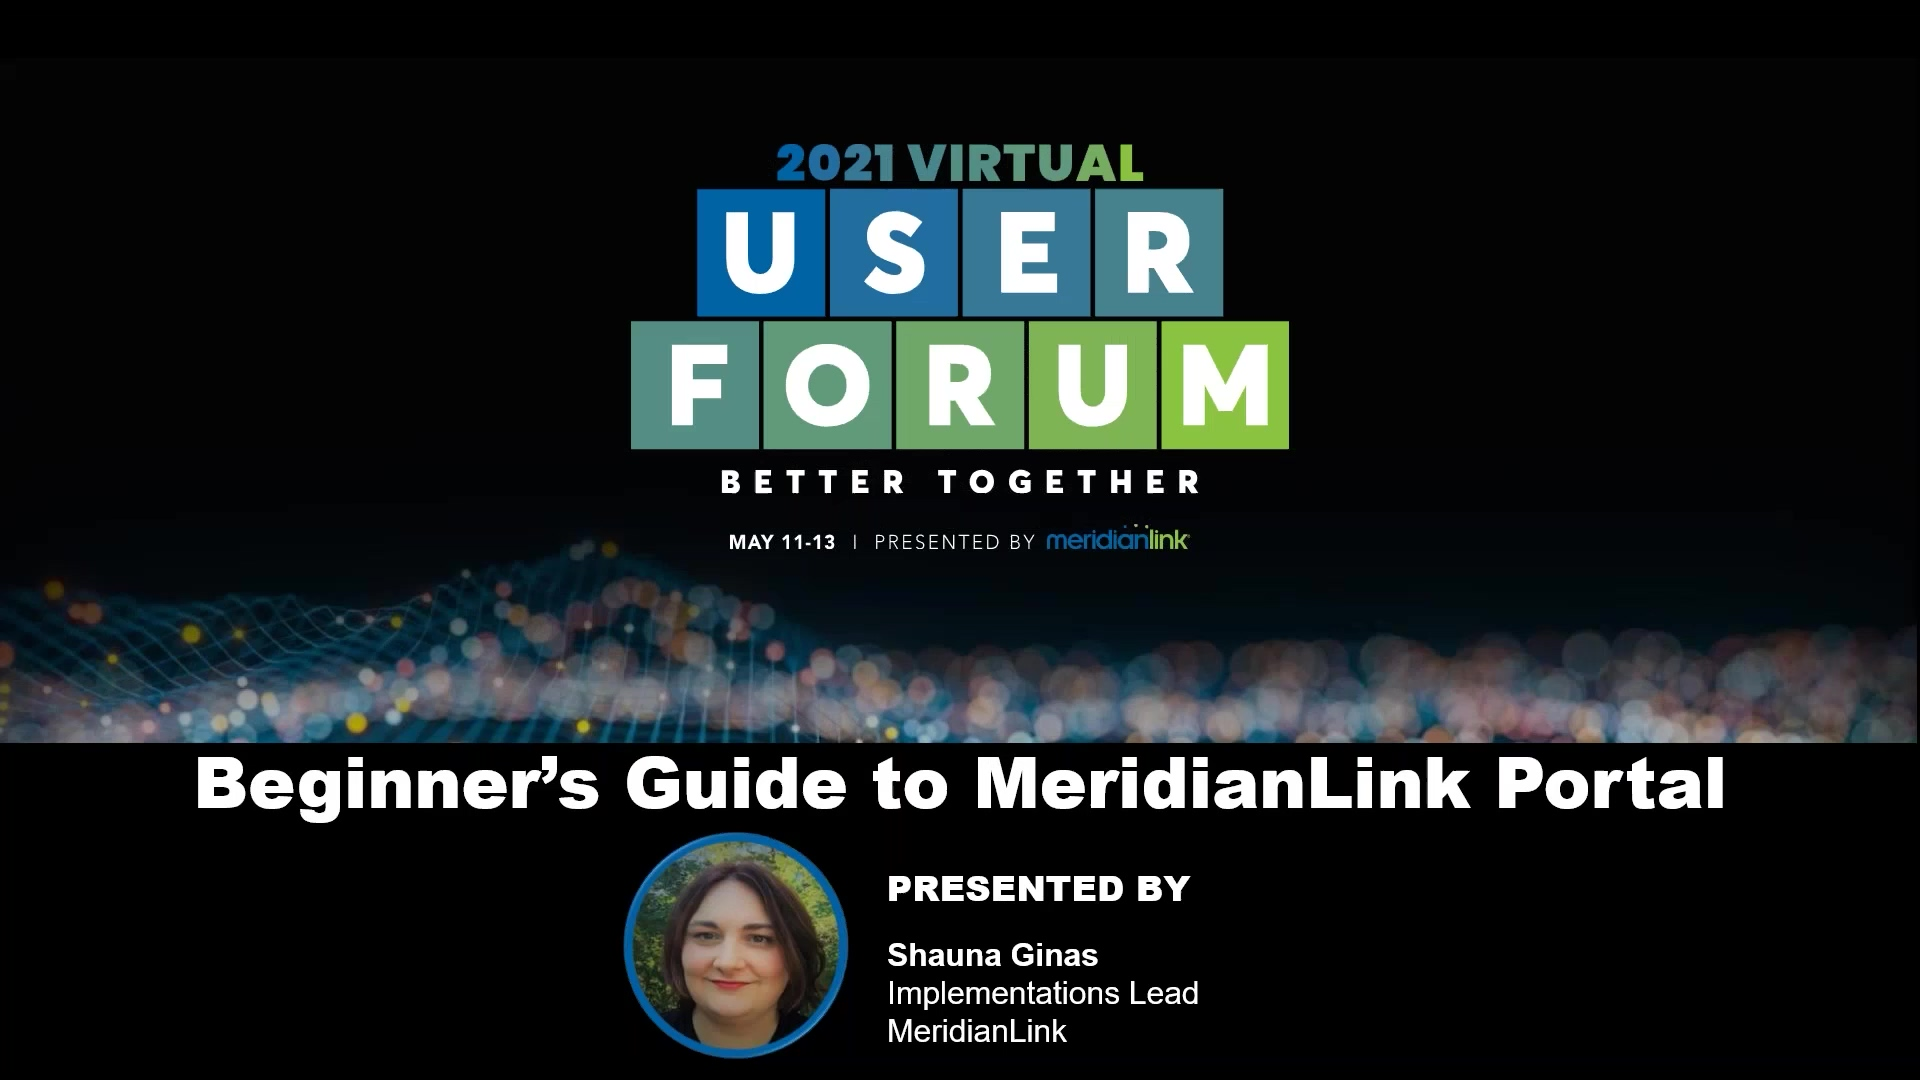 The Beginners Guide to MeridianLink Portal